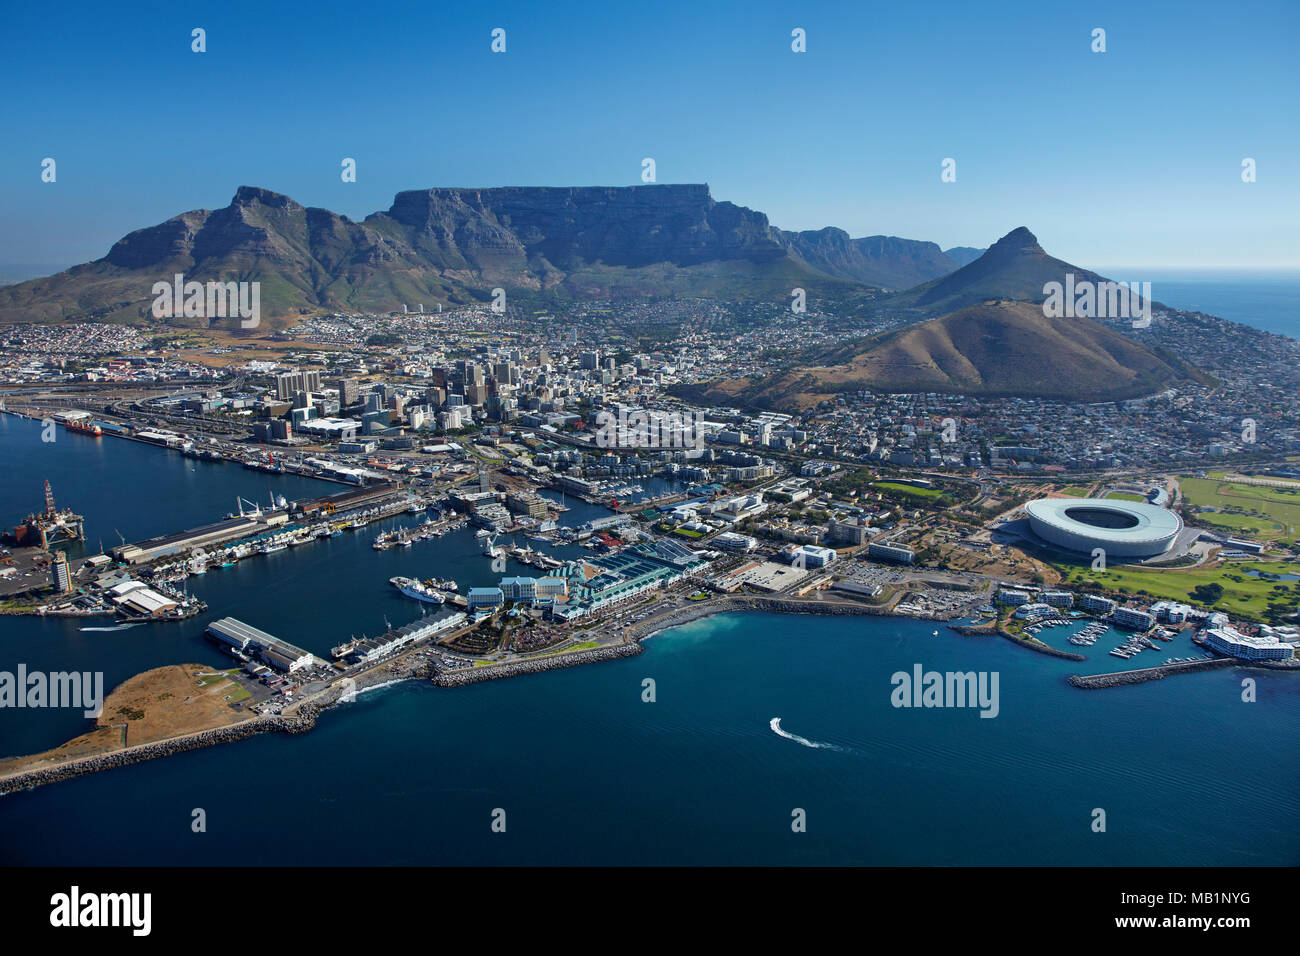 V & A Waterfront, Cape Town Stadium, and Table Mountain, Cape Town, South Africa - aerial - Stock Image